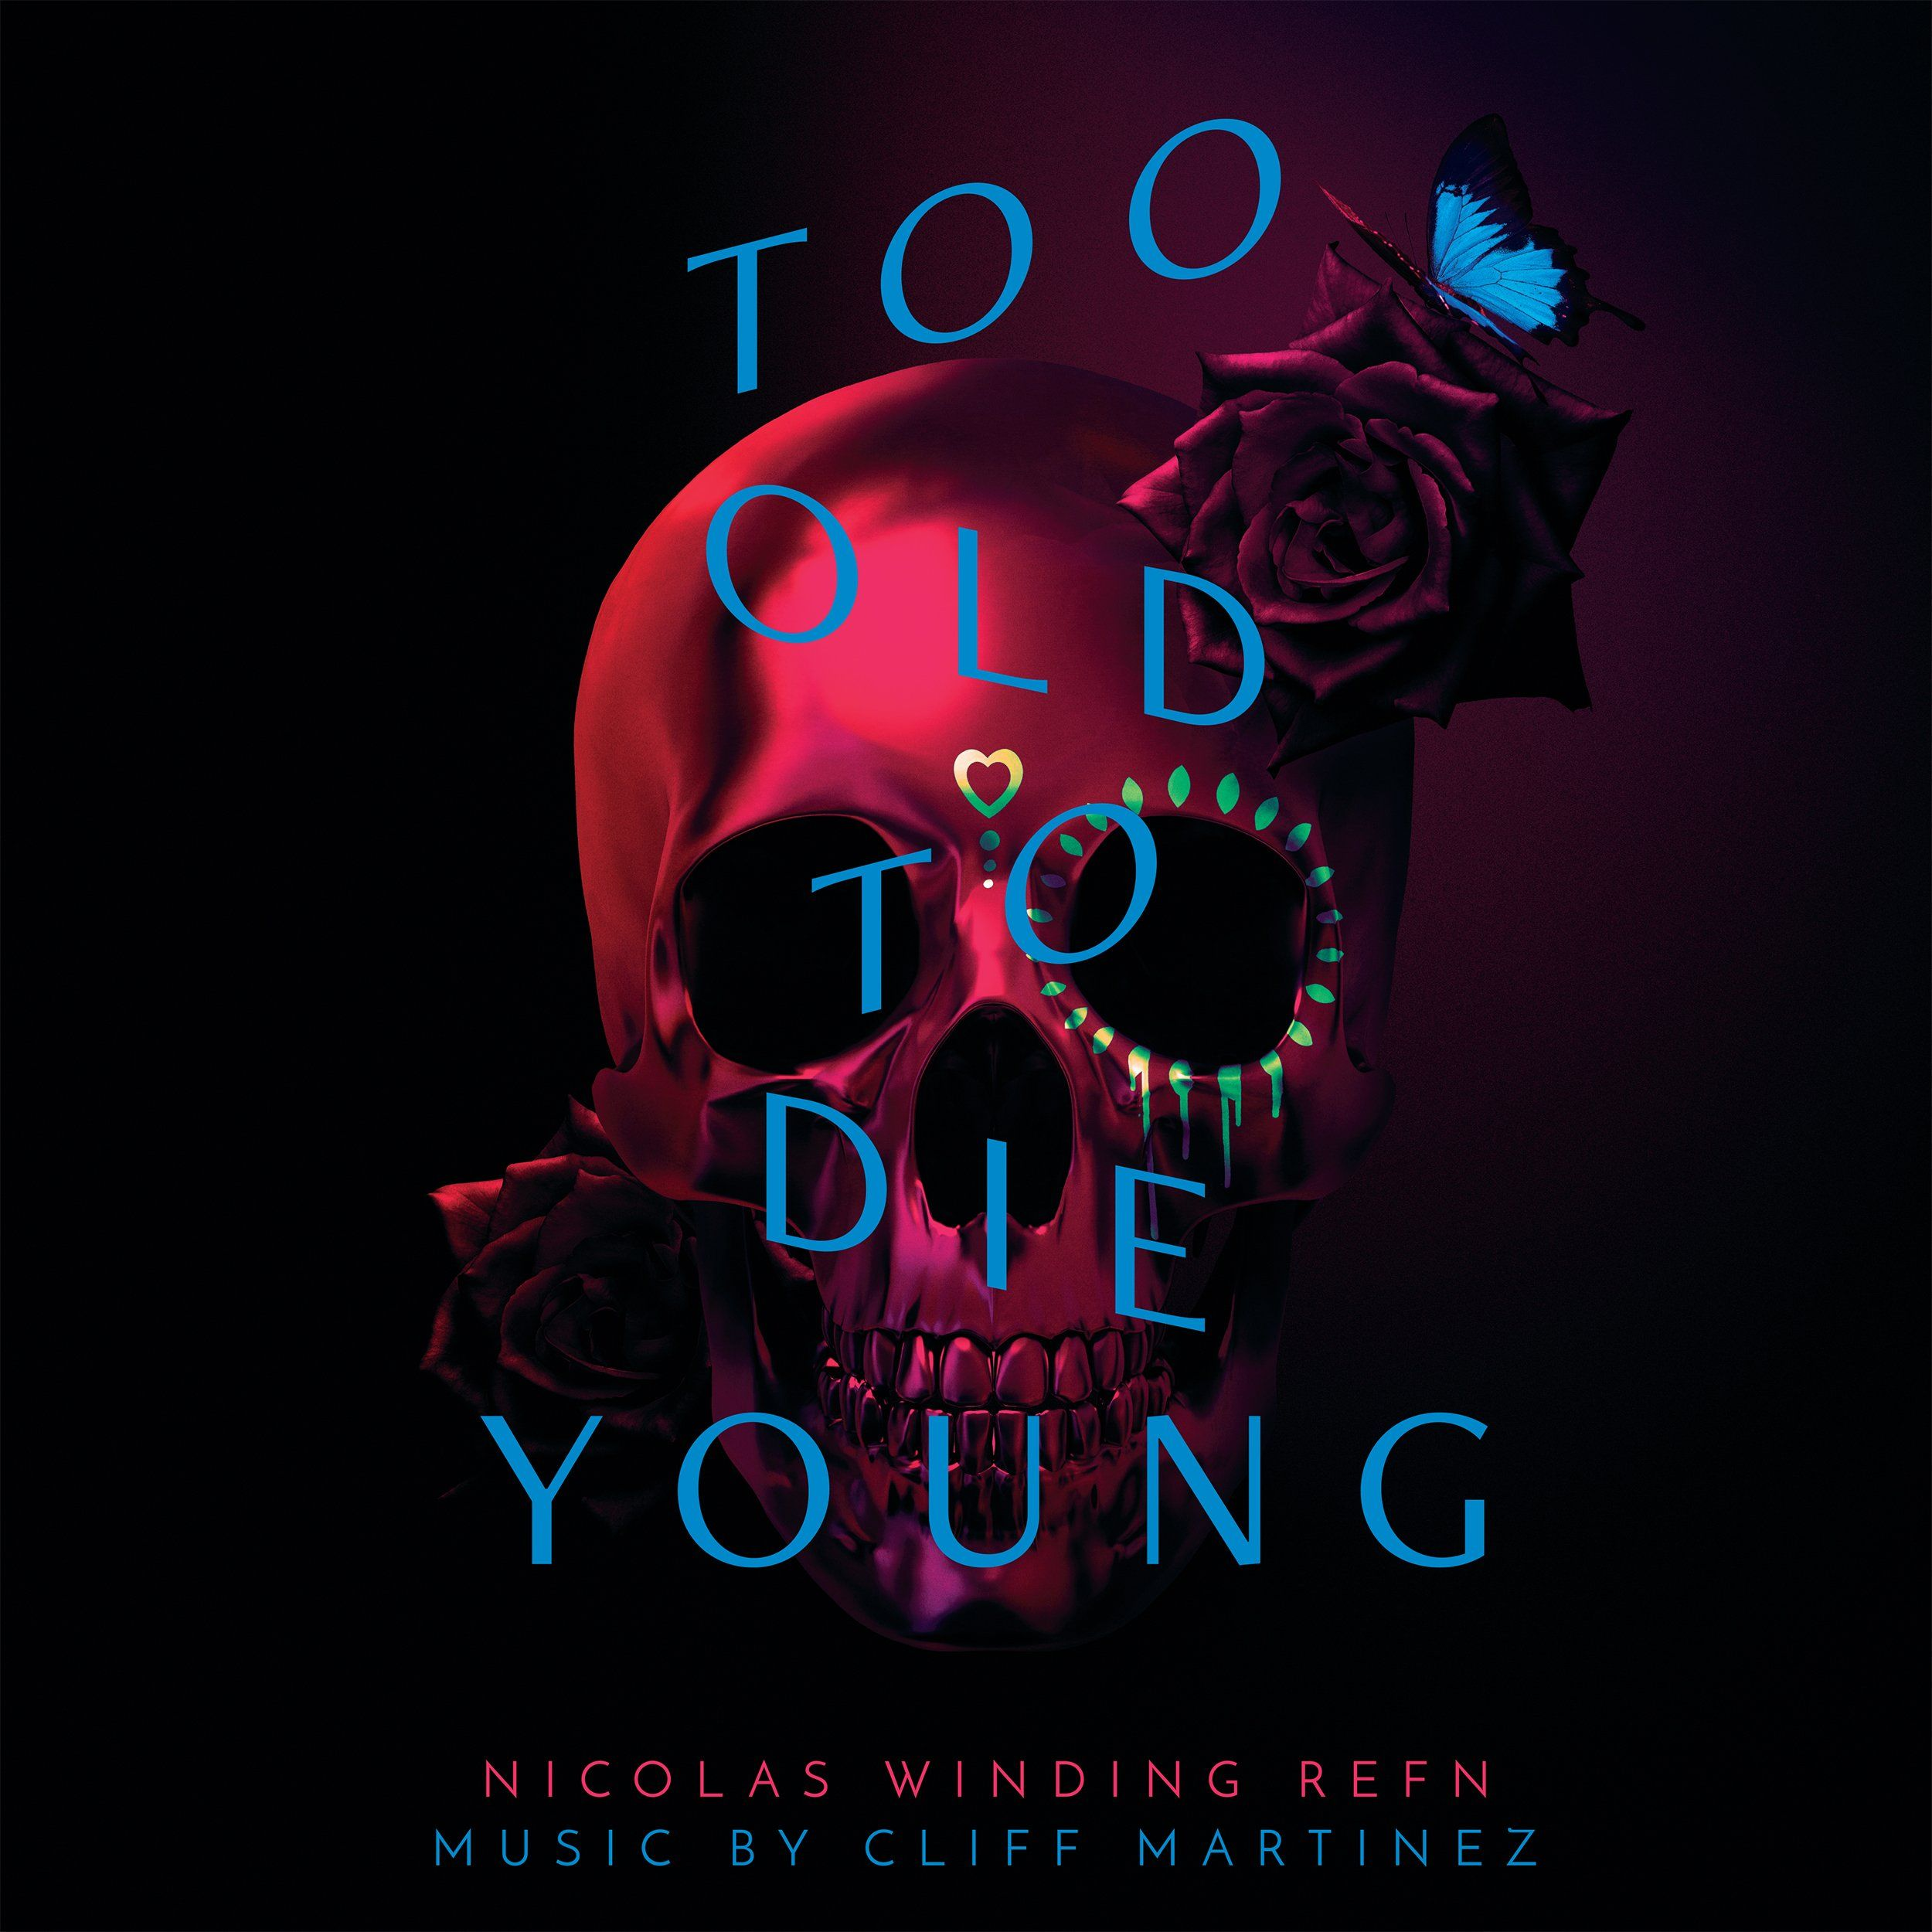 Too Old To Die Young Original Soundtrack 2xlp Die Young The Neon Demon Lyrics Aesthetic